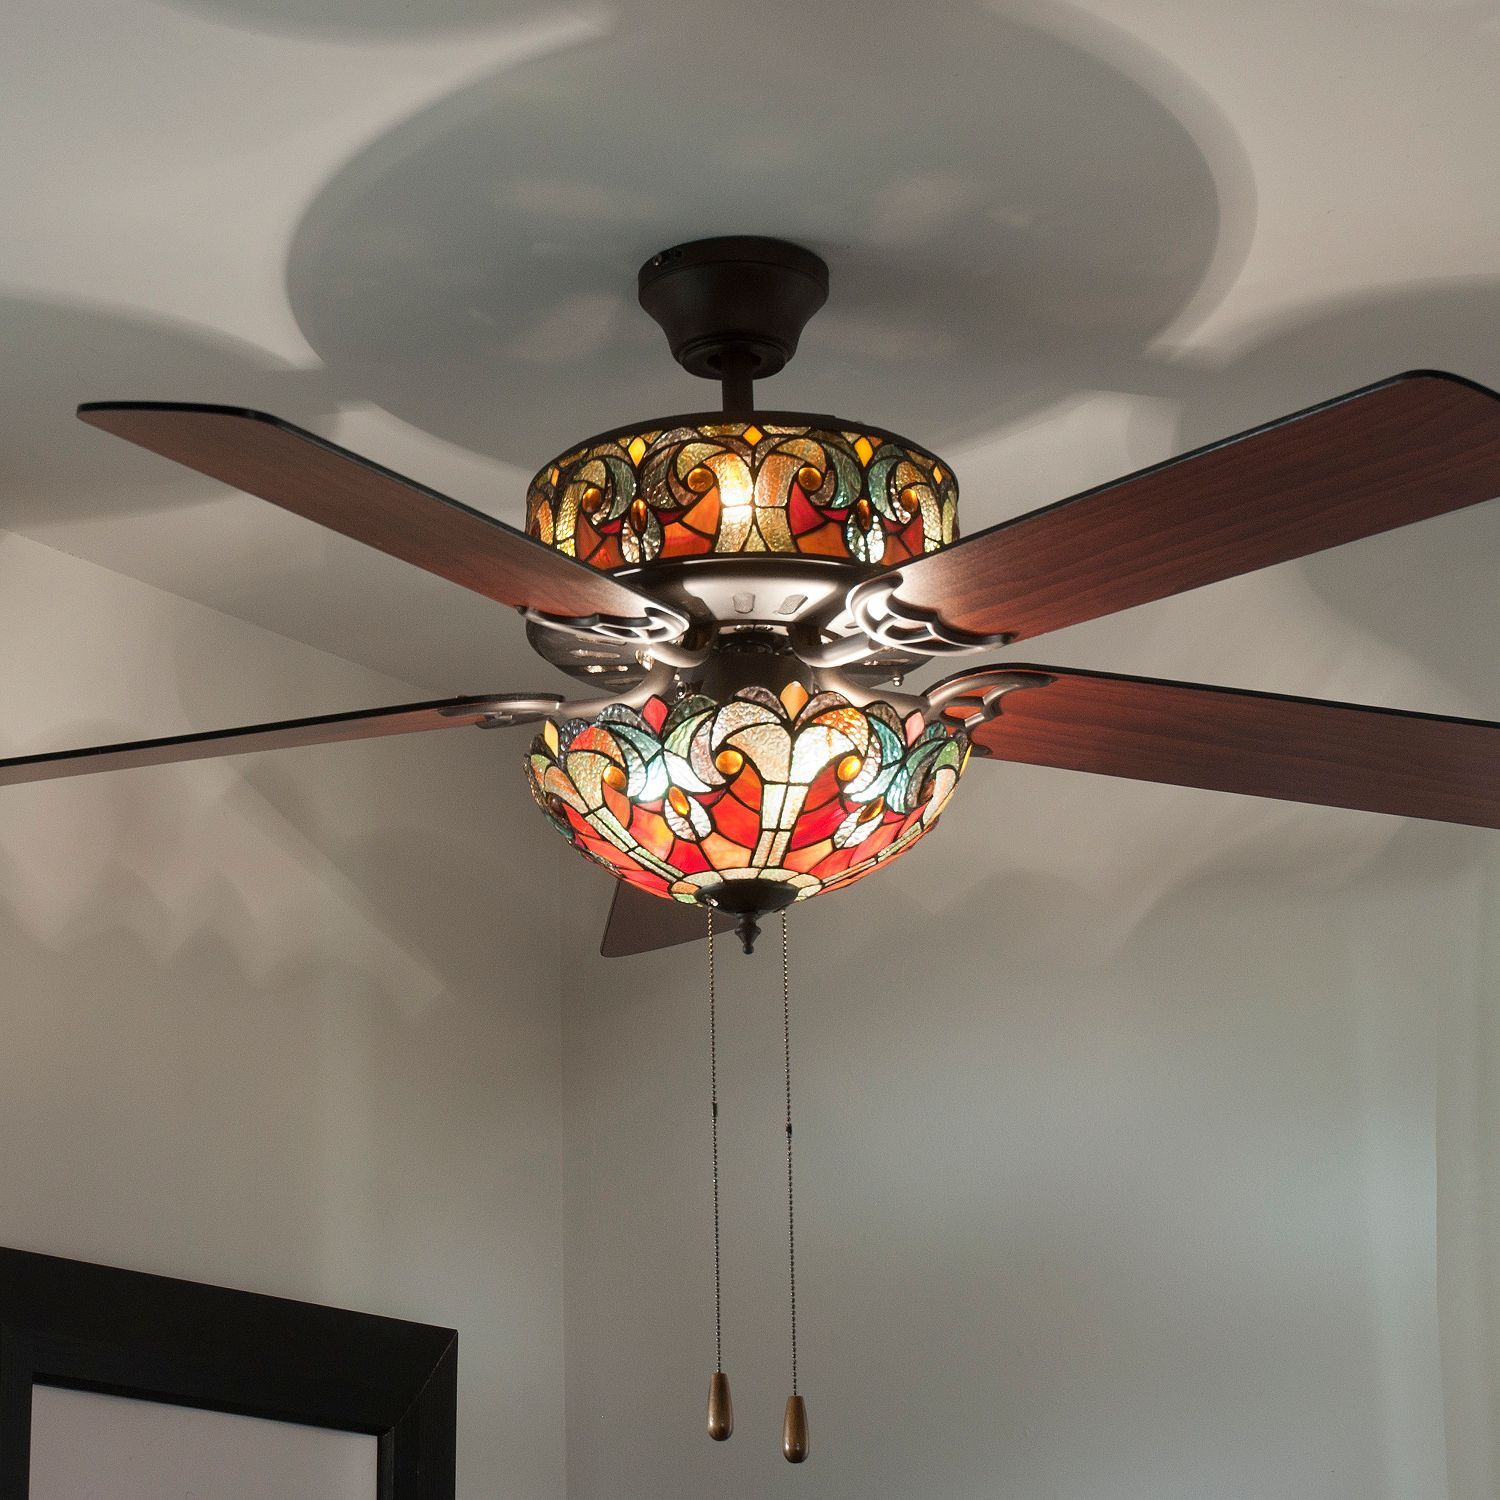 light rustic w cabernet fan aireryder vaxcel style by ceiling tiffany